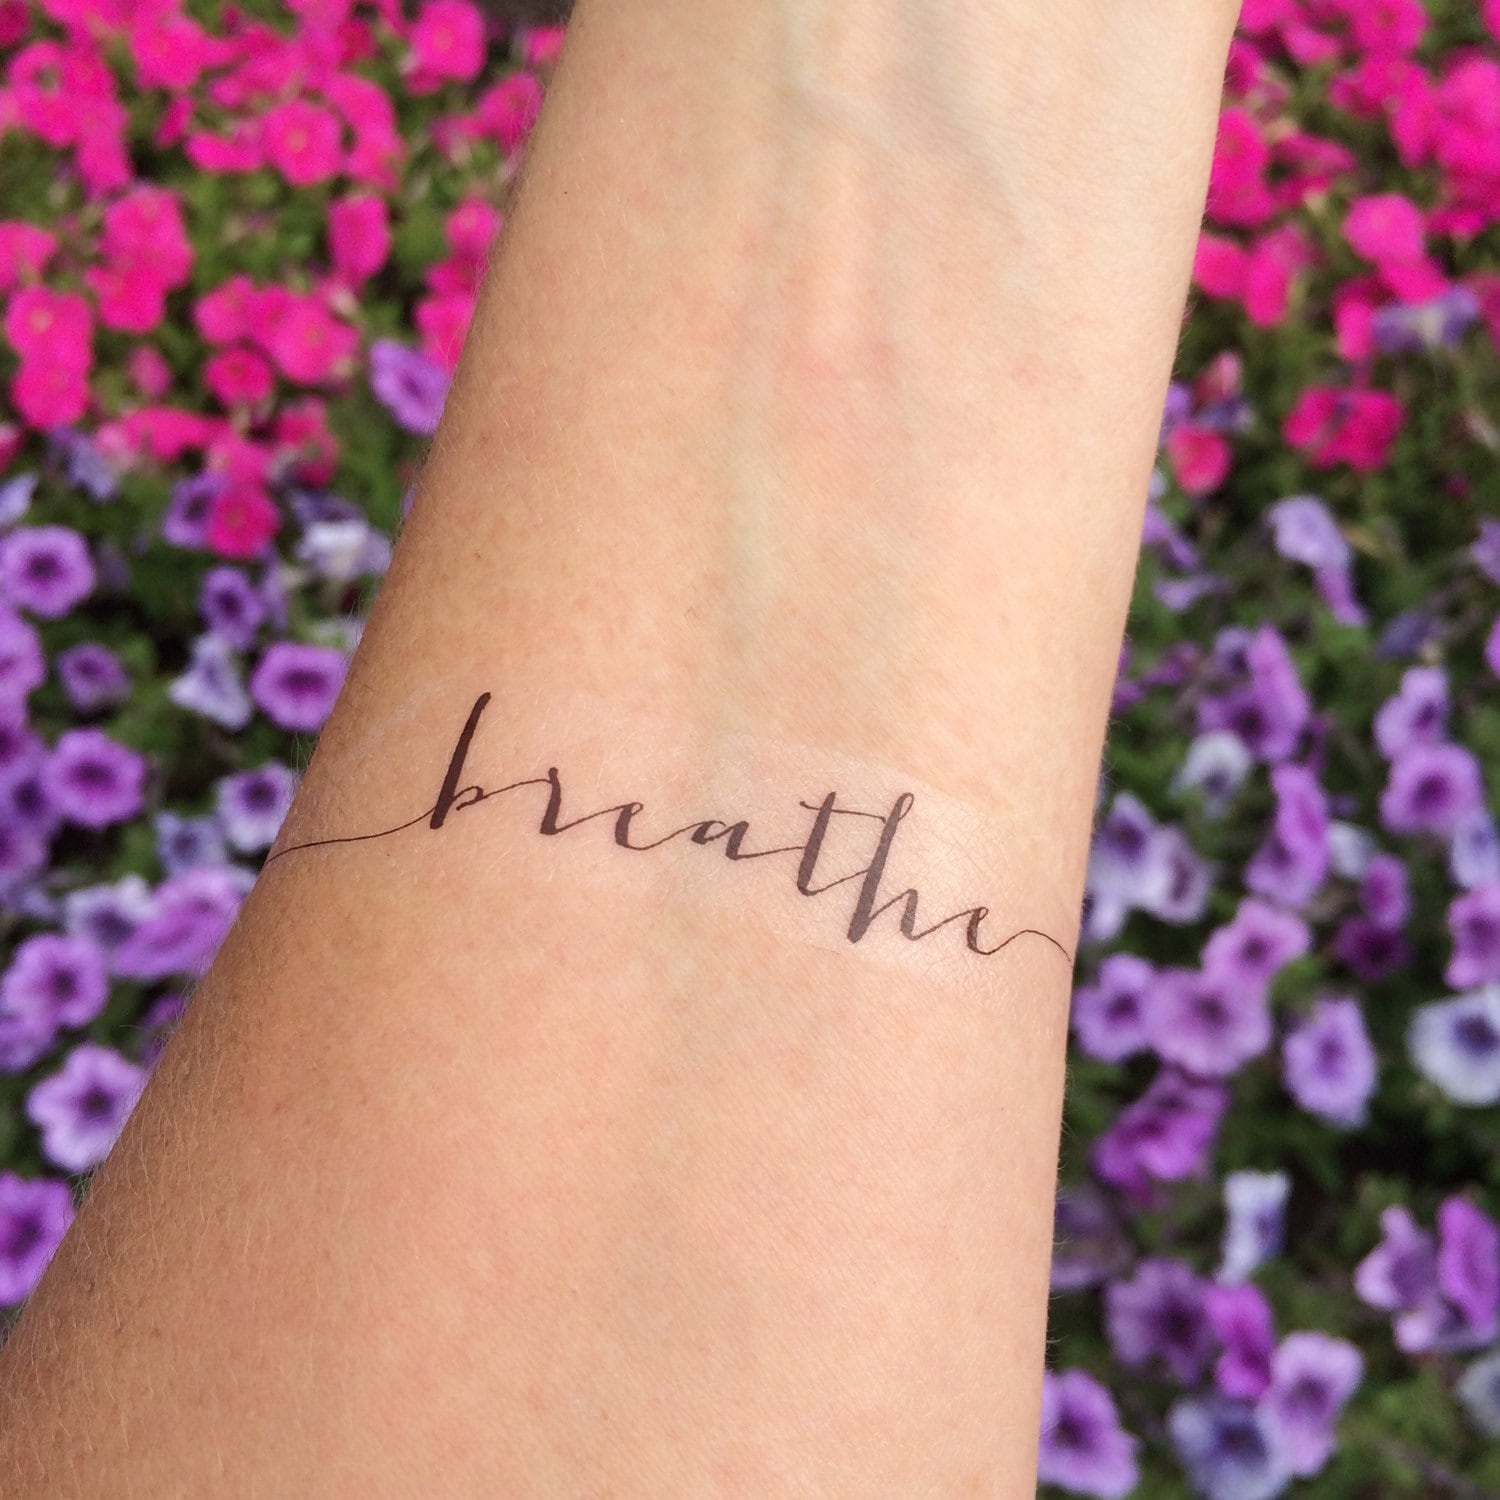 Breathe Tattoo Arm Tattoo Temporary Tattoo Fake Tattoo